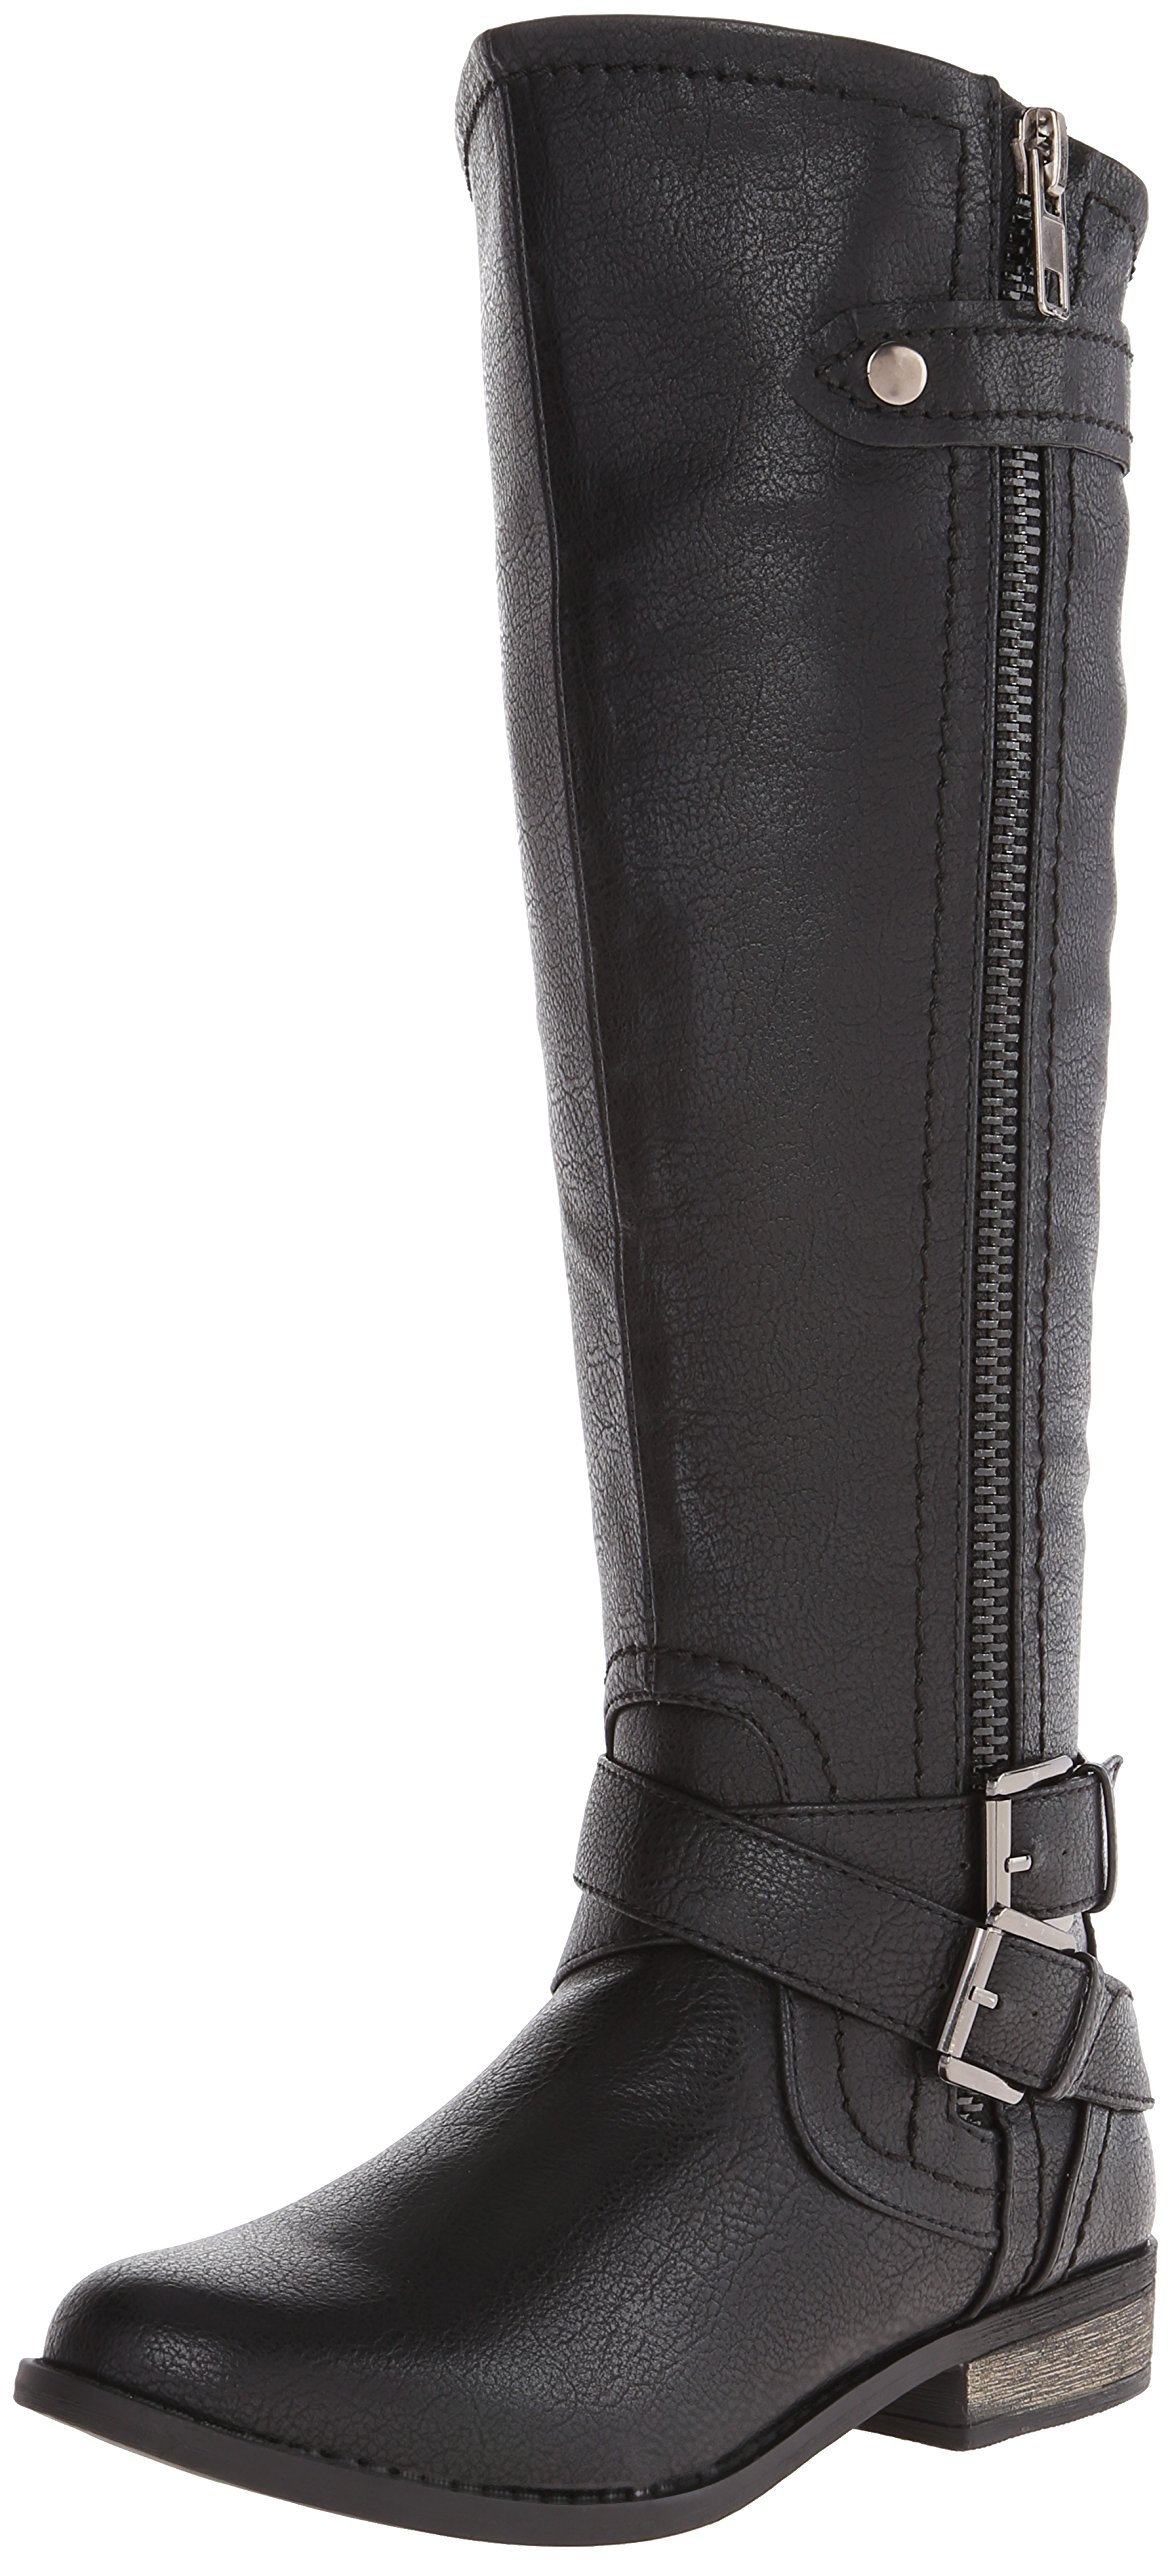 Rampage Women's Hansel Zipper and Buckle Knee-High Riding Boot,Black Smooth,7.5 B(M) US Regular Calf